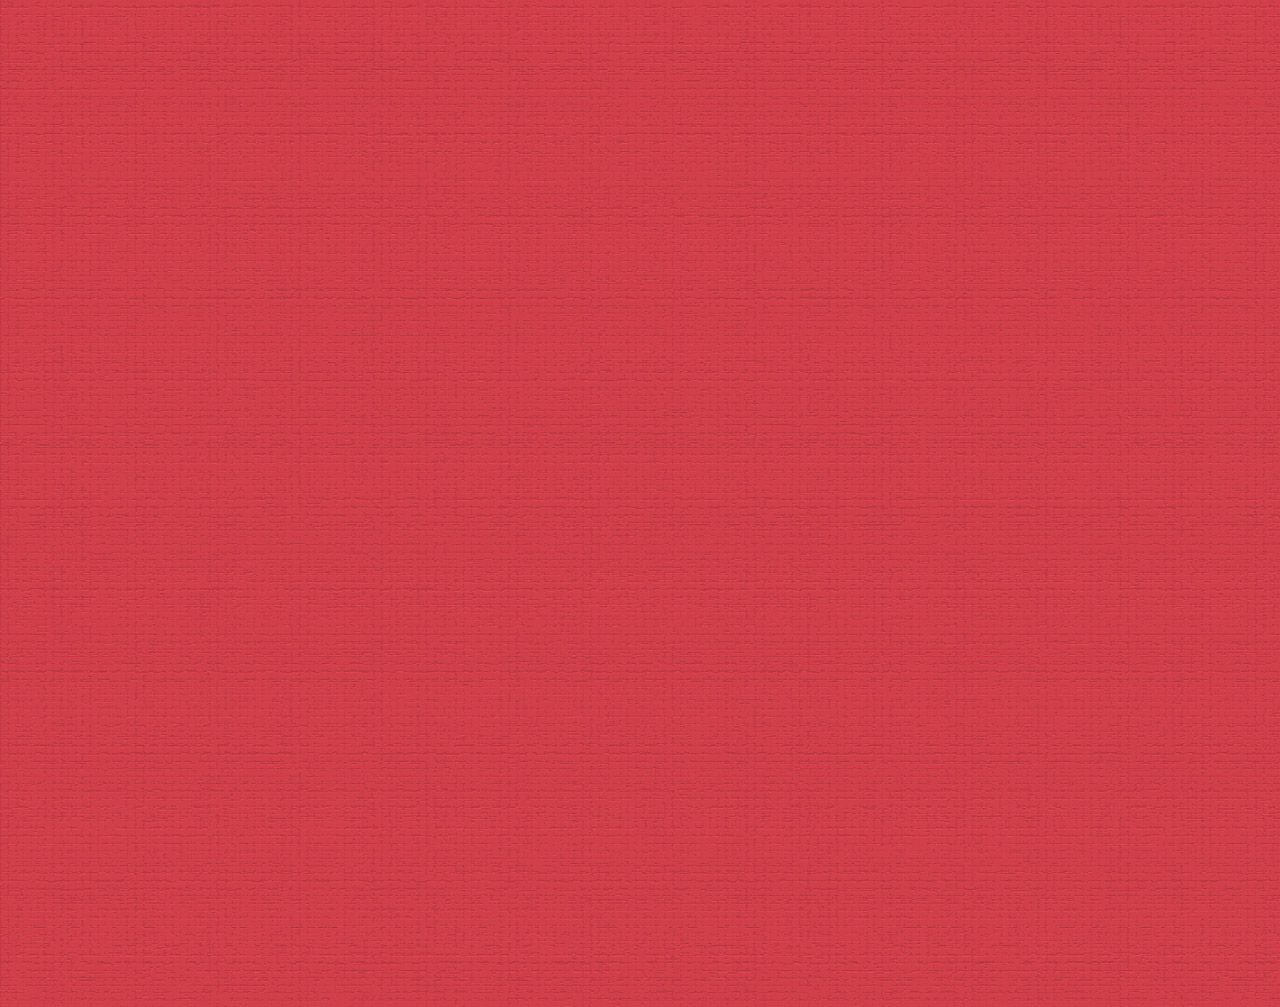 Solid Red Color Background Texture